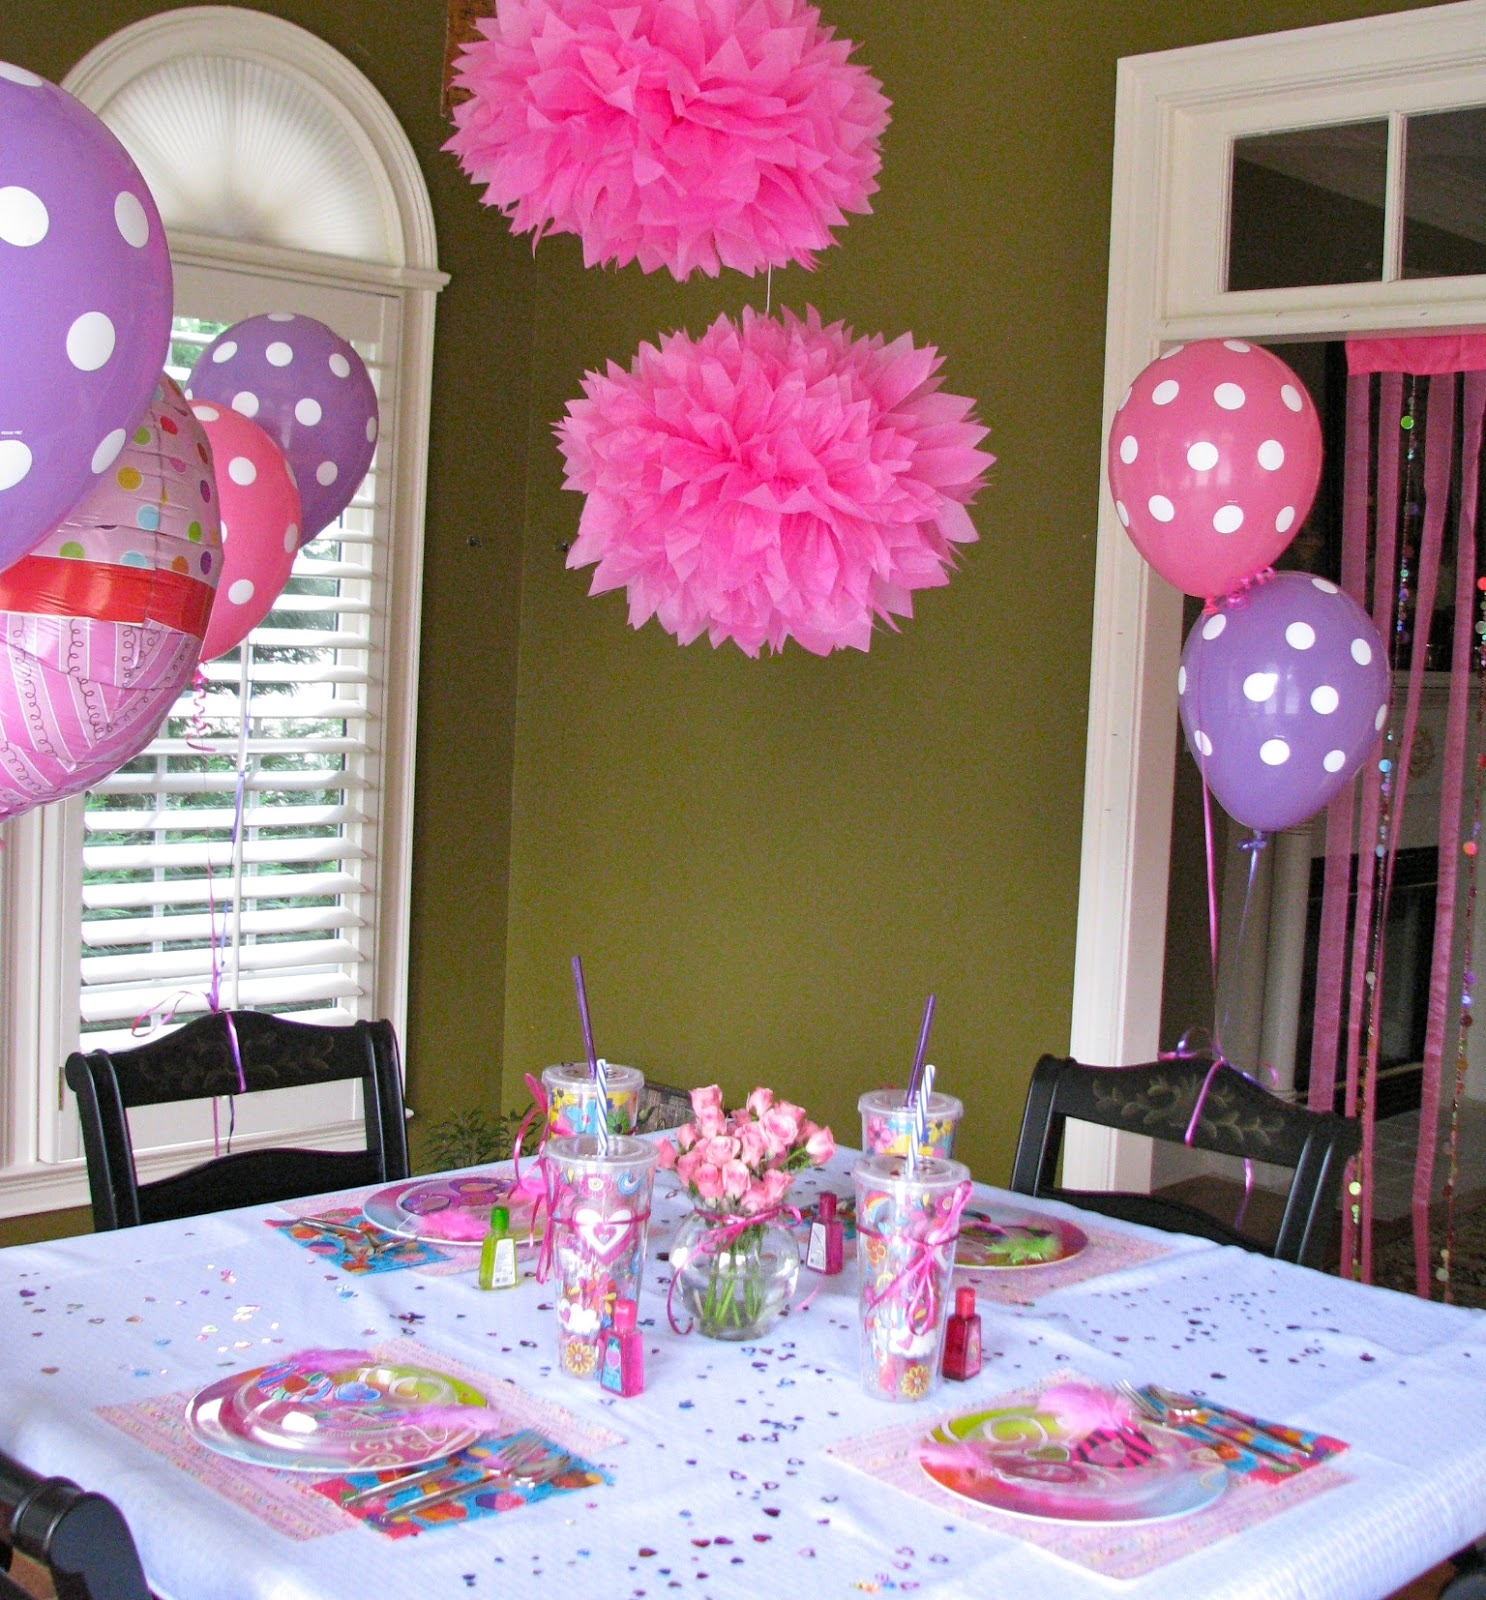 Homemadeville your place for homemade inspiration girl 39 s for 13th birthday party decoration ideas